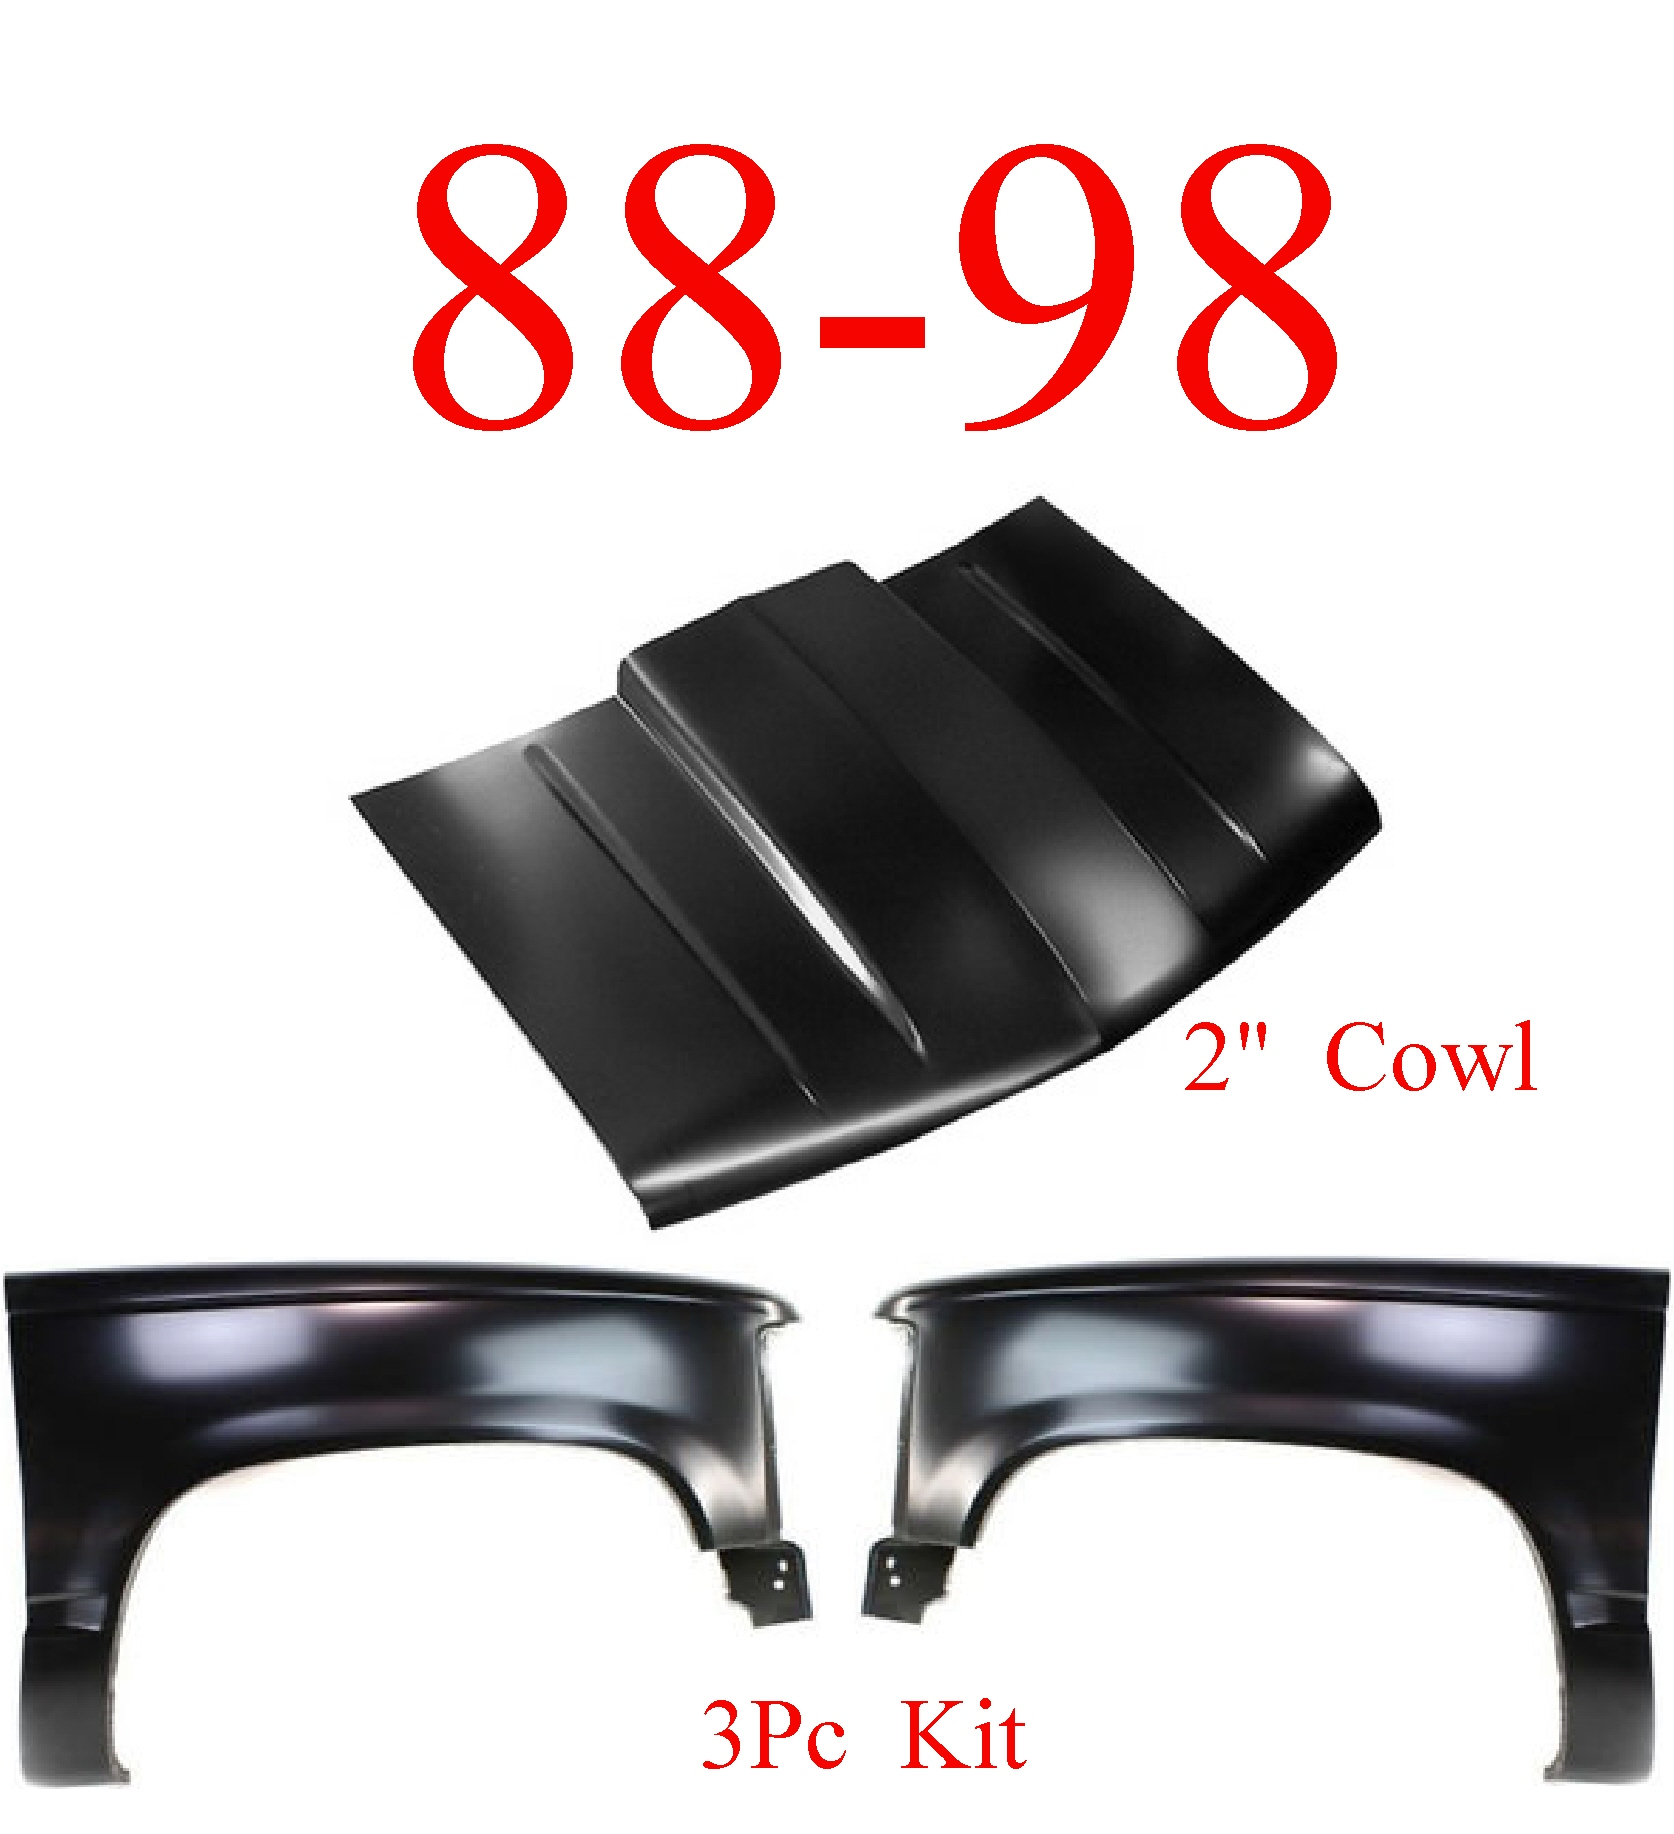 "88-98 Chevy GMC 3Pc Cowl Hood 2"" & Fender Set"